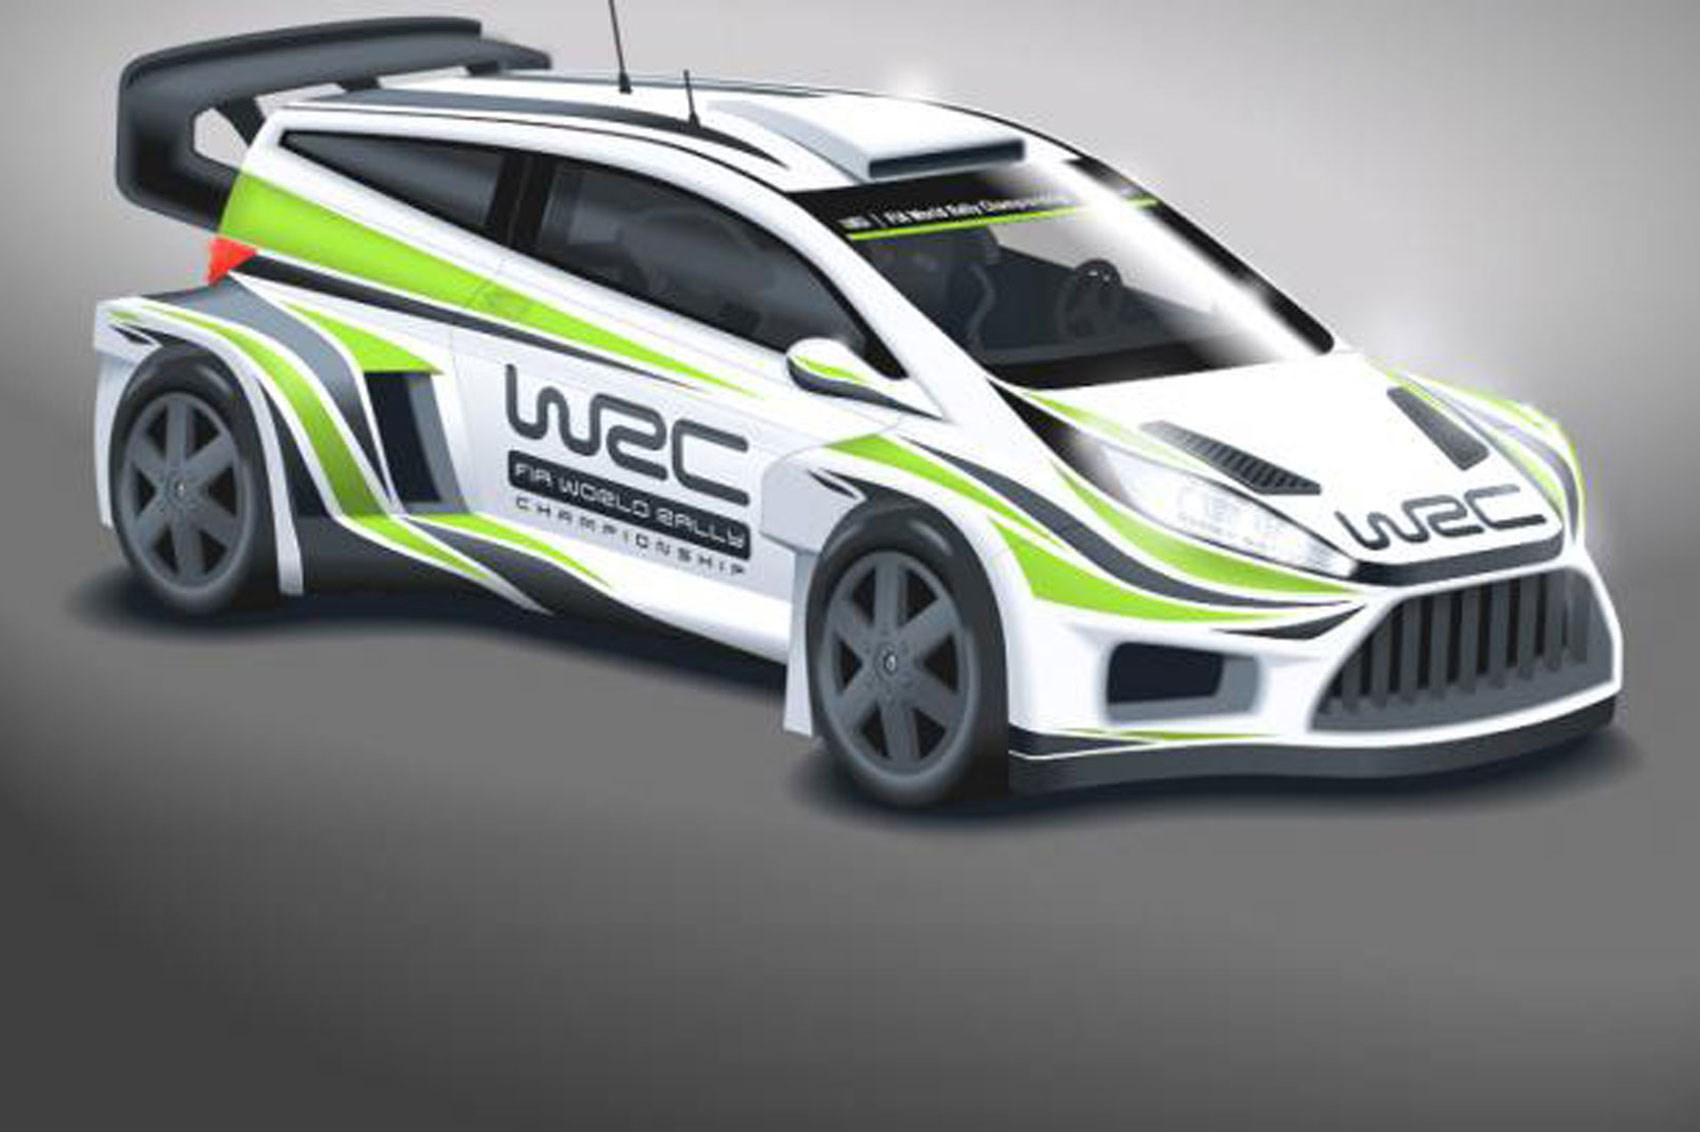 Ultrablogus  Gorgeous Wild New Look For Wrc Cars In  By Car Magazine With Marvelous Wrc Cars Will Get Wider Bodies Bigger Wings And More Power For  With Cute Toyota Wish Interior Also Chevy Monza Interior In Addition Interior Sidelights And M Interior As Well As Chevrolet Truck Interior Parts Additionally  Chevy Bel Air Interior From Carmagazinecouk With Ultrablogus  Marvelous Wild New Look For Wrc Cars In  By Car Magazine With Cute Wrc Cars Will Get Wider Bodies Bigger Wings And More Power For  And Gorgeous Toyota Wish Interior Also Chevy Monza Interior In Addition Interior Sidelights From Carmagazinecouk